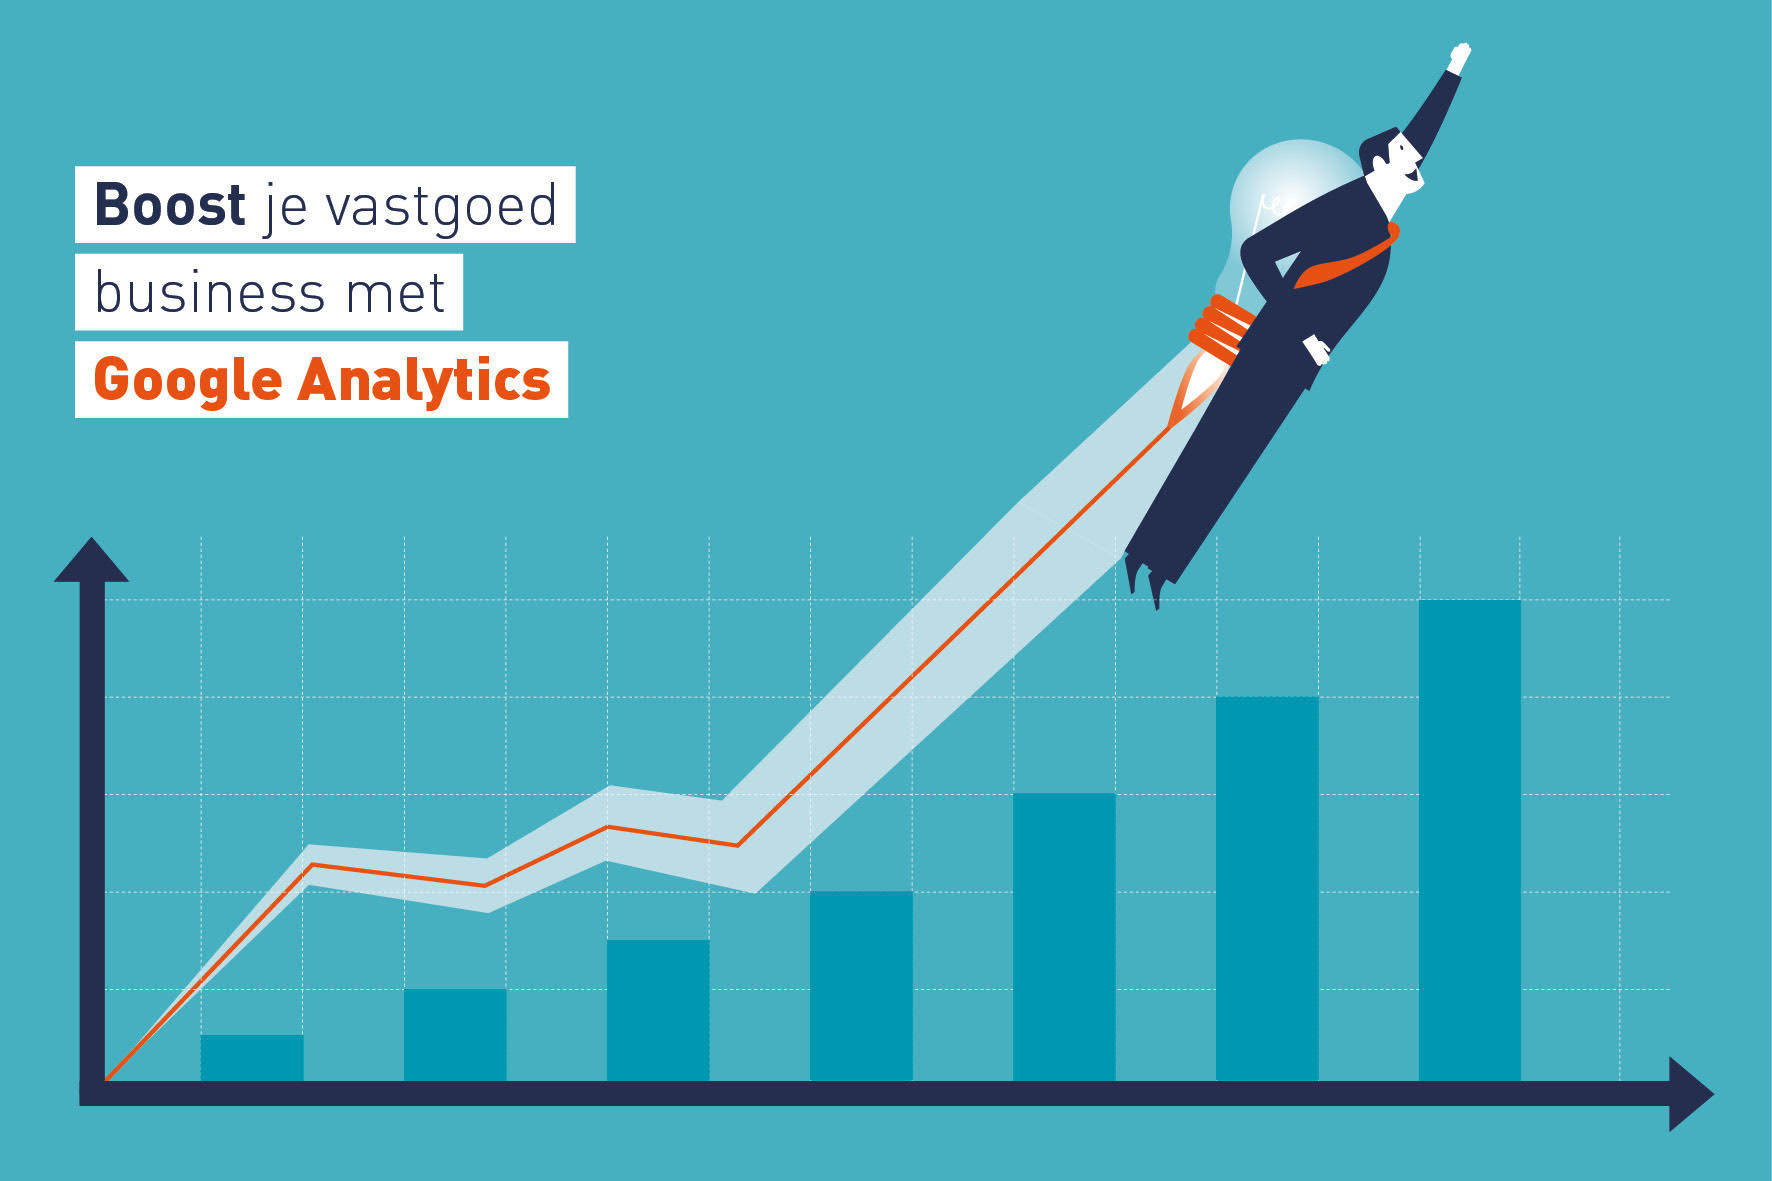 Google-Analytics-vastgoed-business